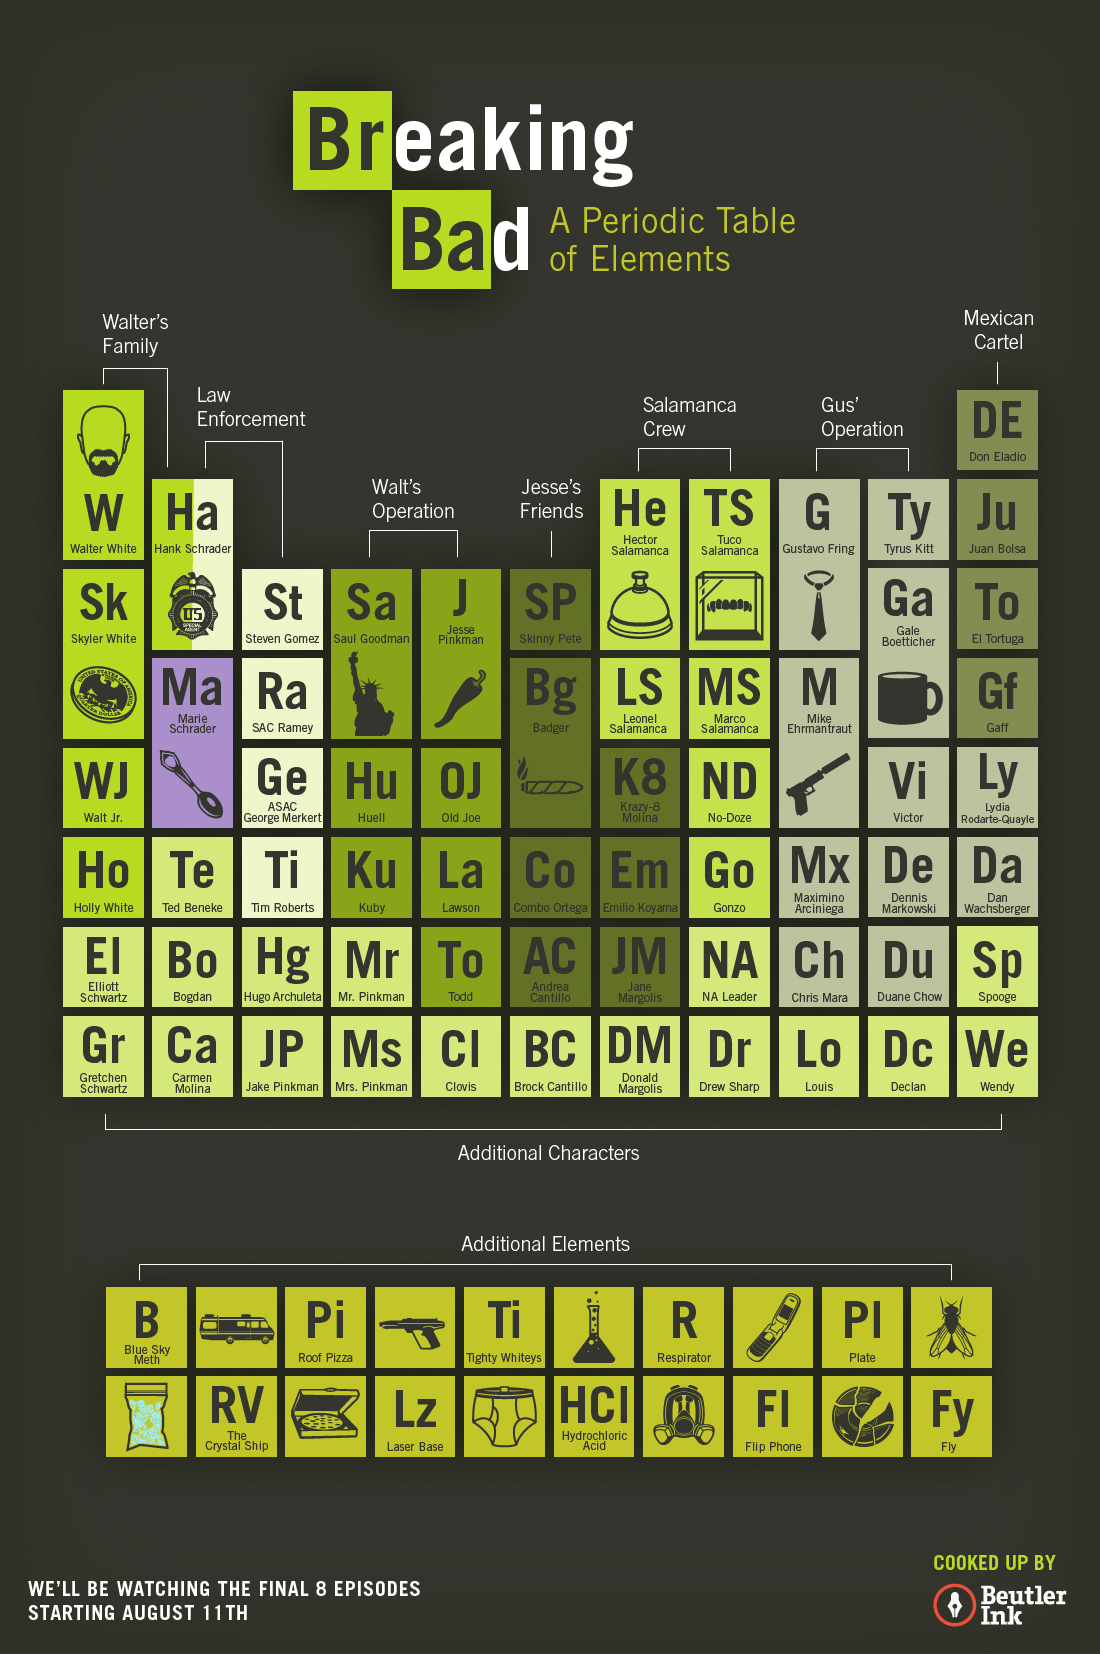 Breaking bad periodic table charting the elements of walt and breaking bad infographic urtaz Image collections